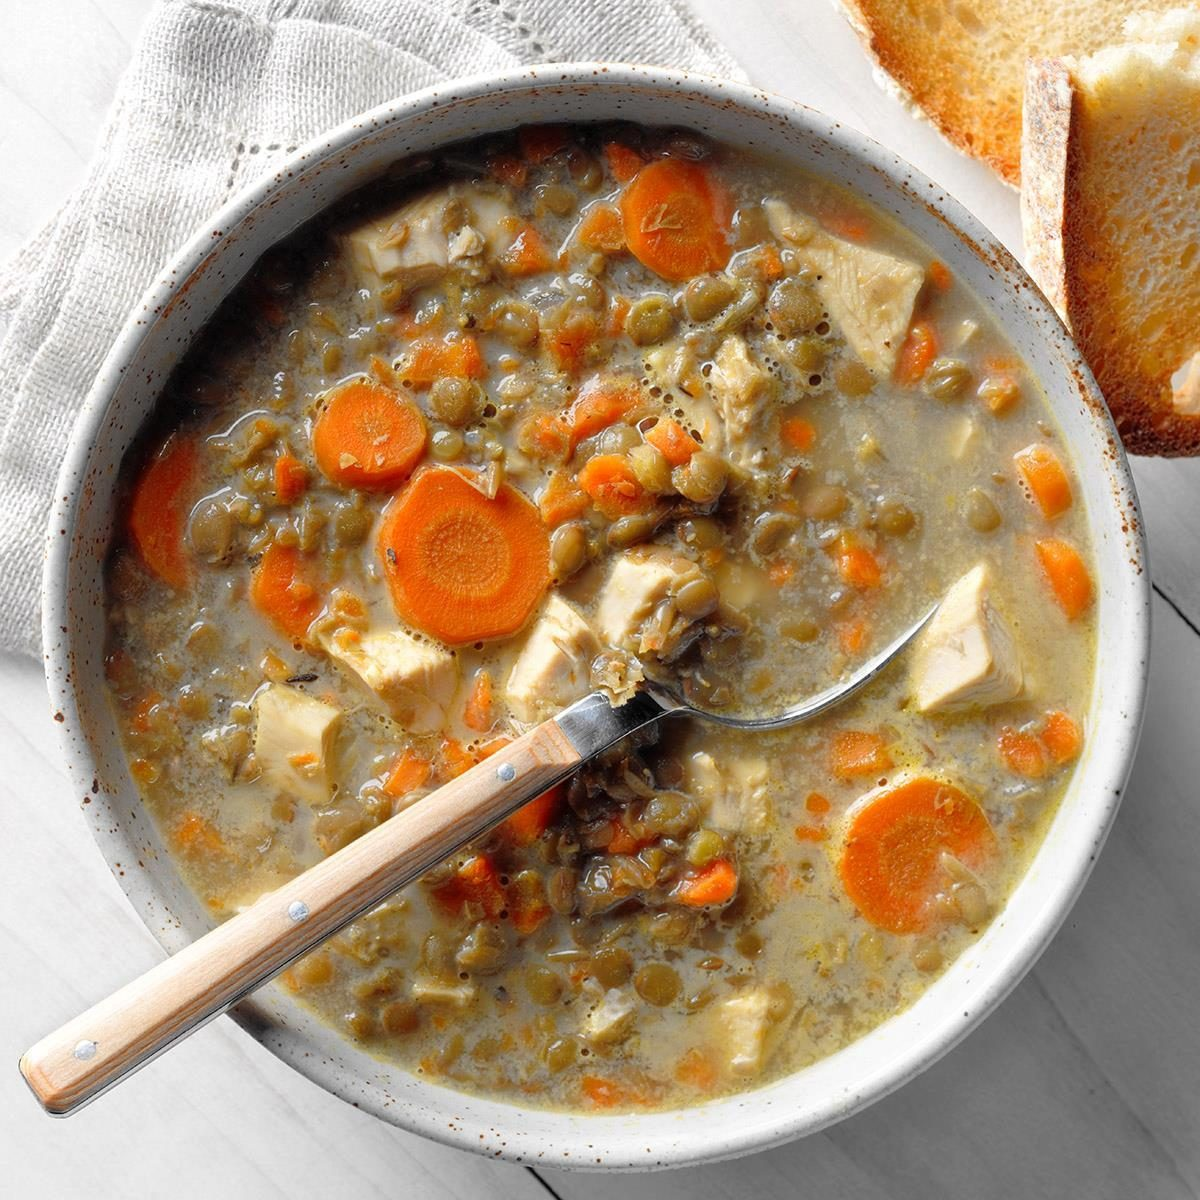 French Lentil And Carrot Soup Exps Thso18 219374 B04 19 8b 4